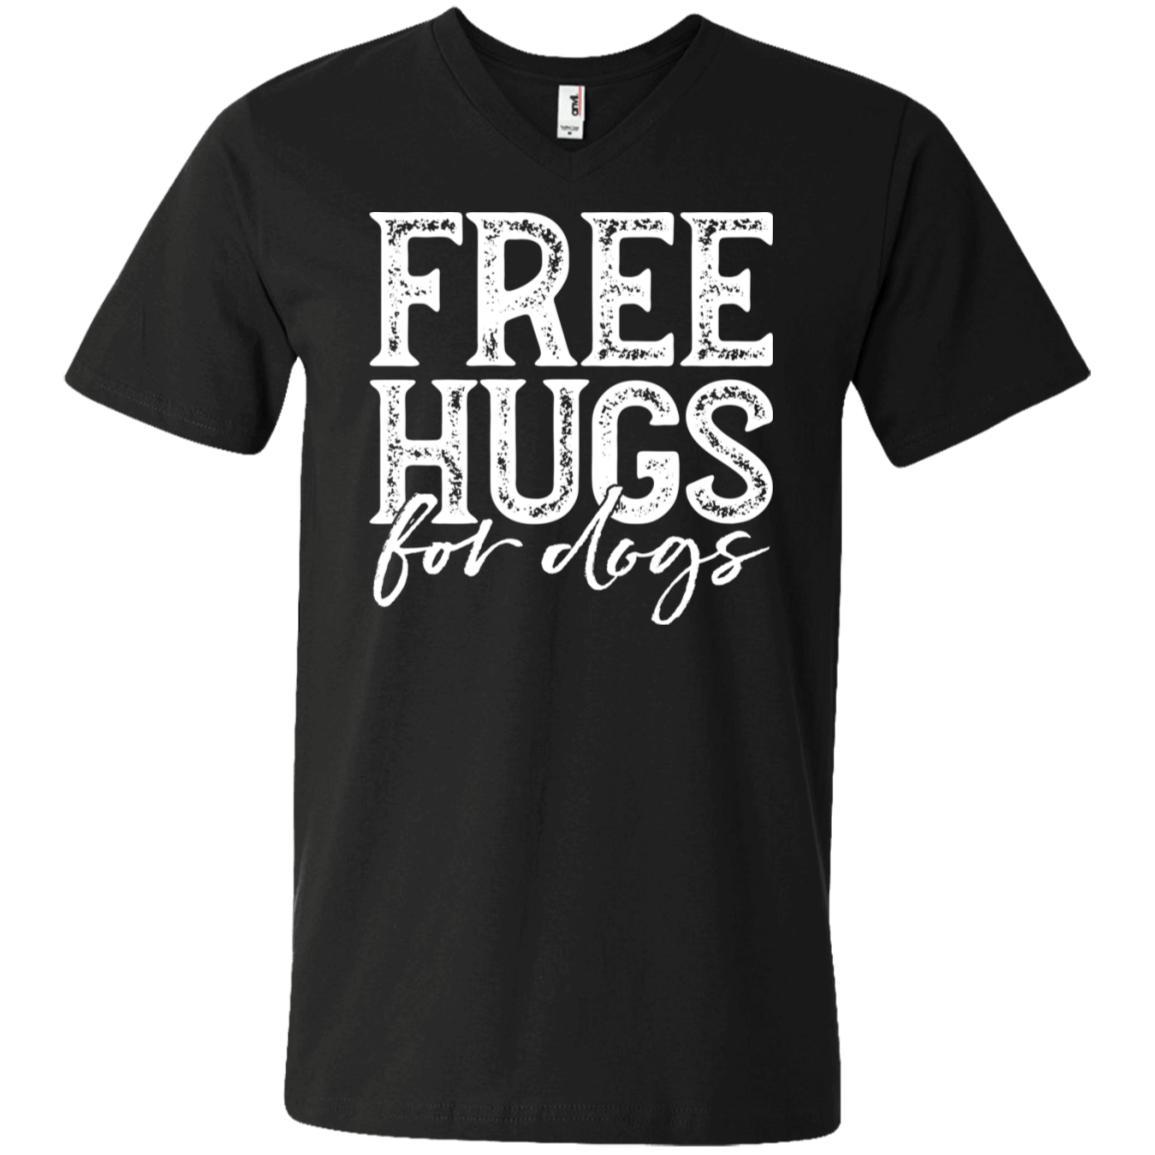 Free Hugs For Dogs V-Neck T-Shirt For Men